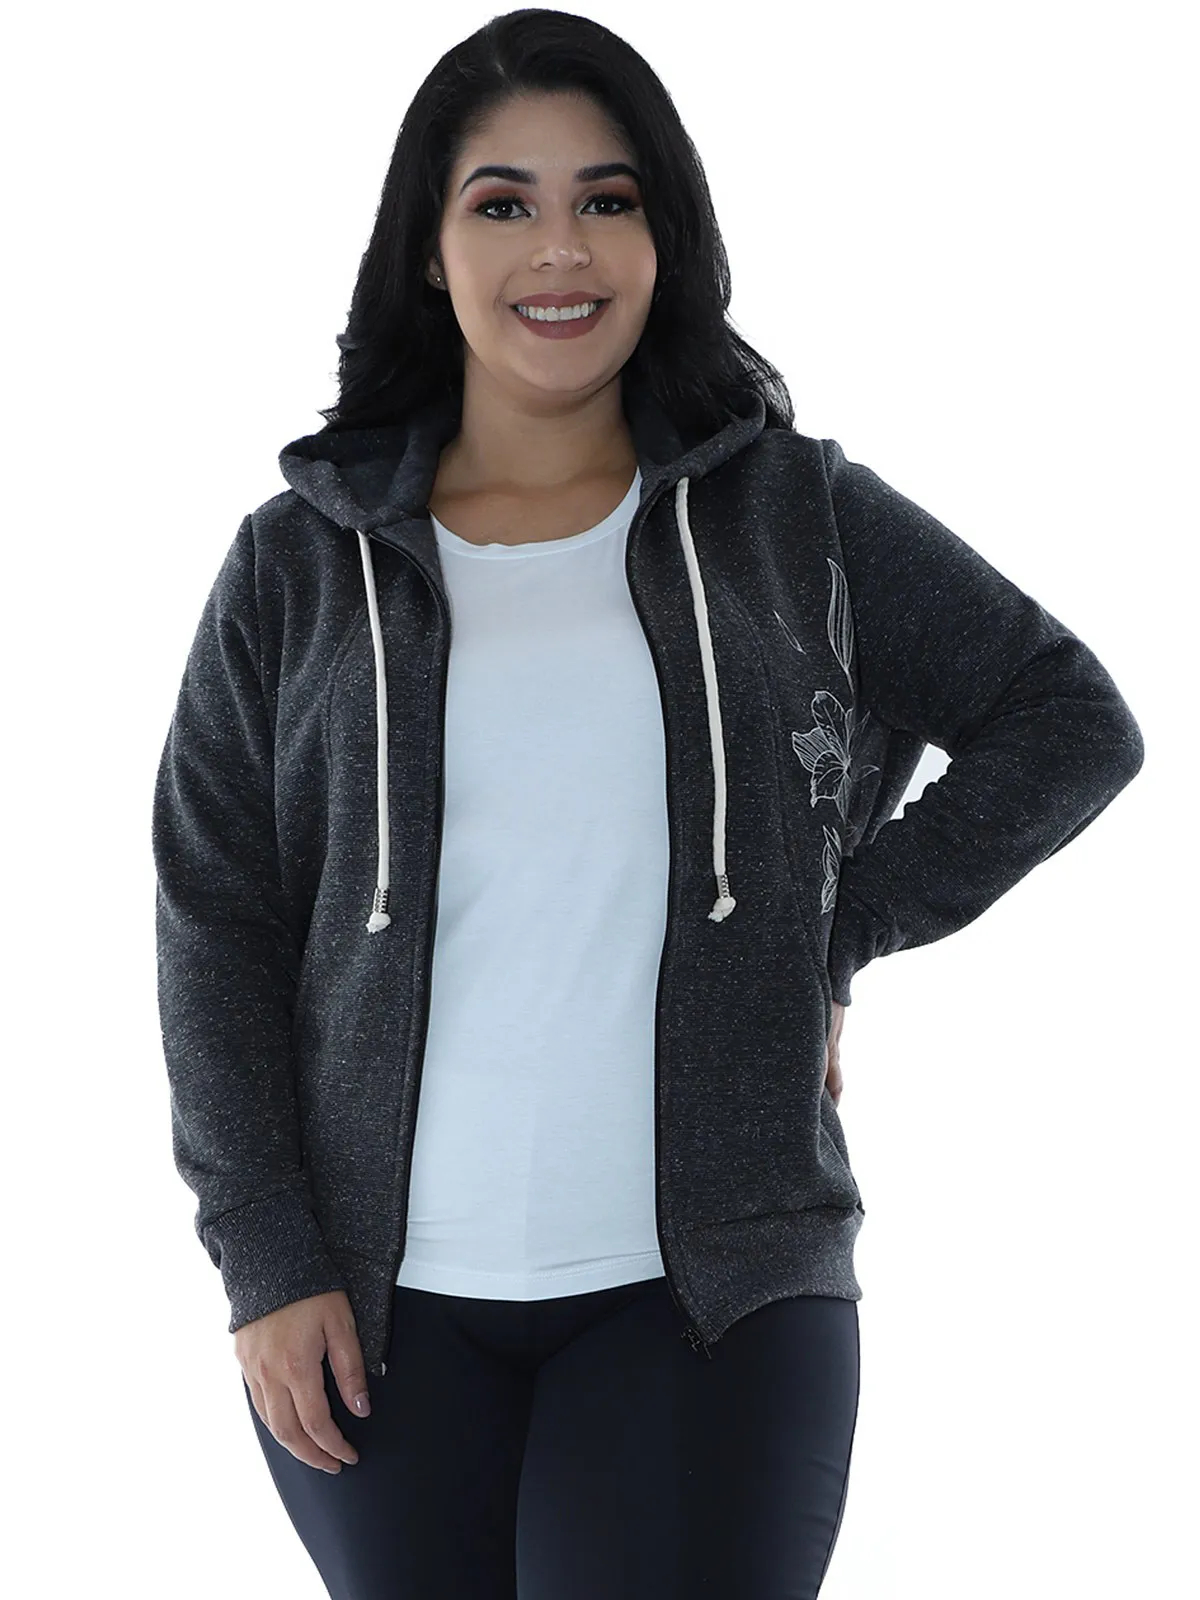 Casaco Plus Size Moletom Fleece Botonê Preto